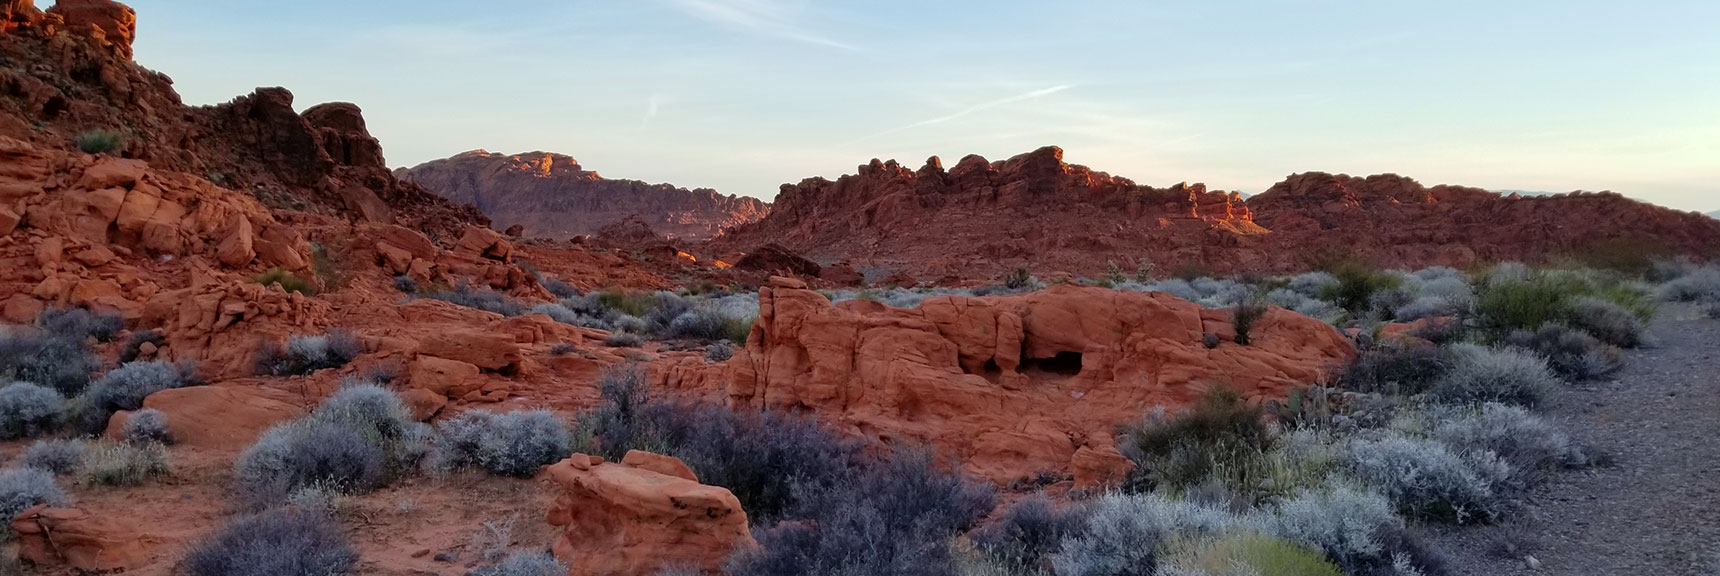 View Behind the Bee Hives Formations on Old Arrowhead Trail in Valley of Fire State Park, Nevada